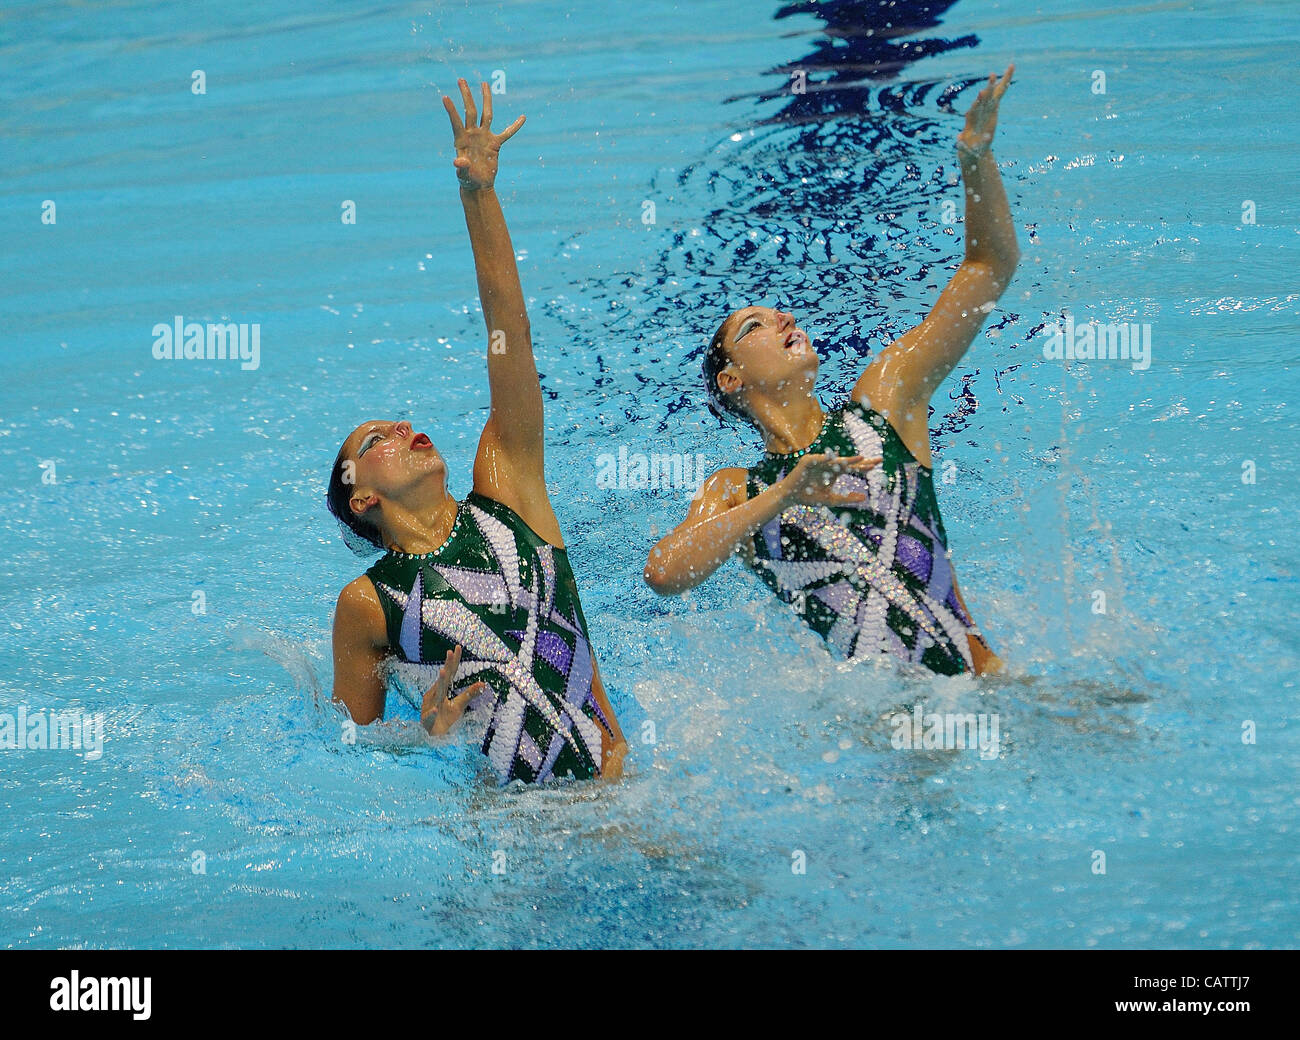 London, England, 22-04-12. Pamela FISHER and Anja NYFFELER (SUI) in the FINA Synchronised Swimming Qualifications. - Stock Image